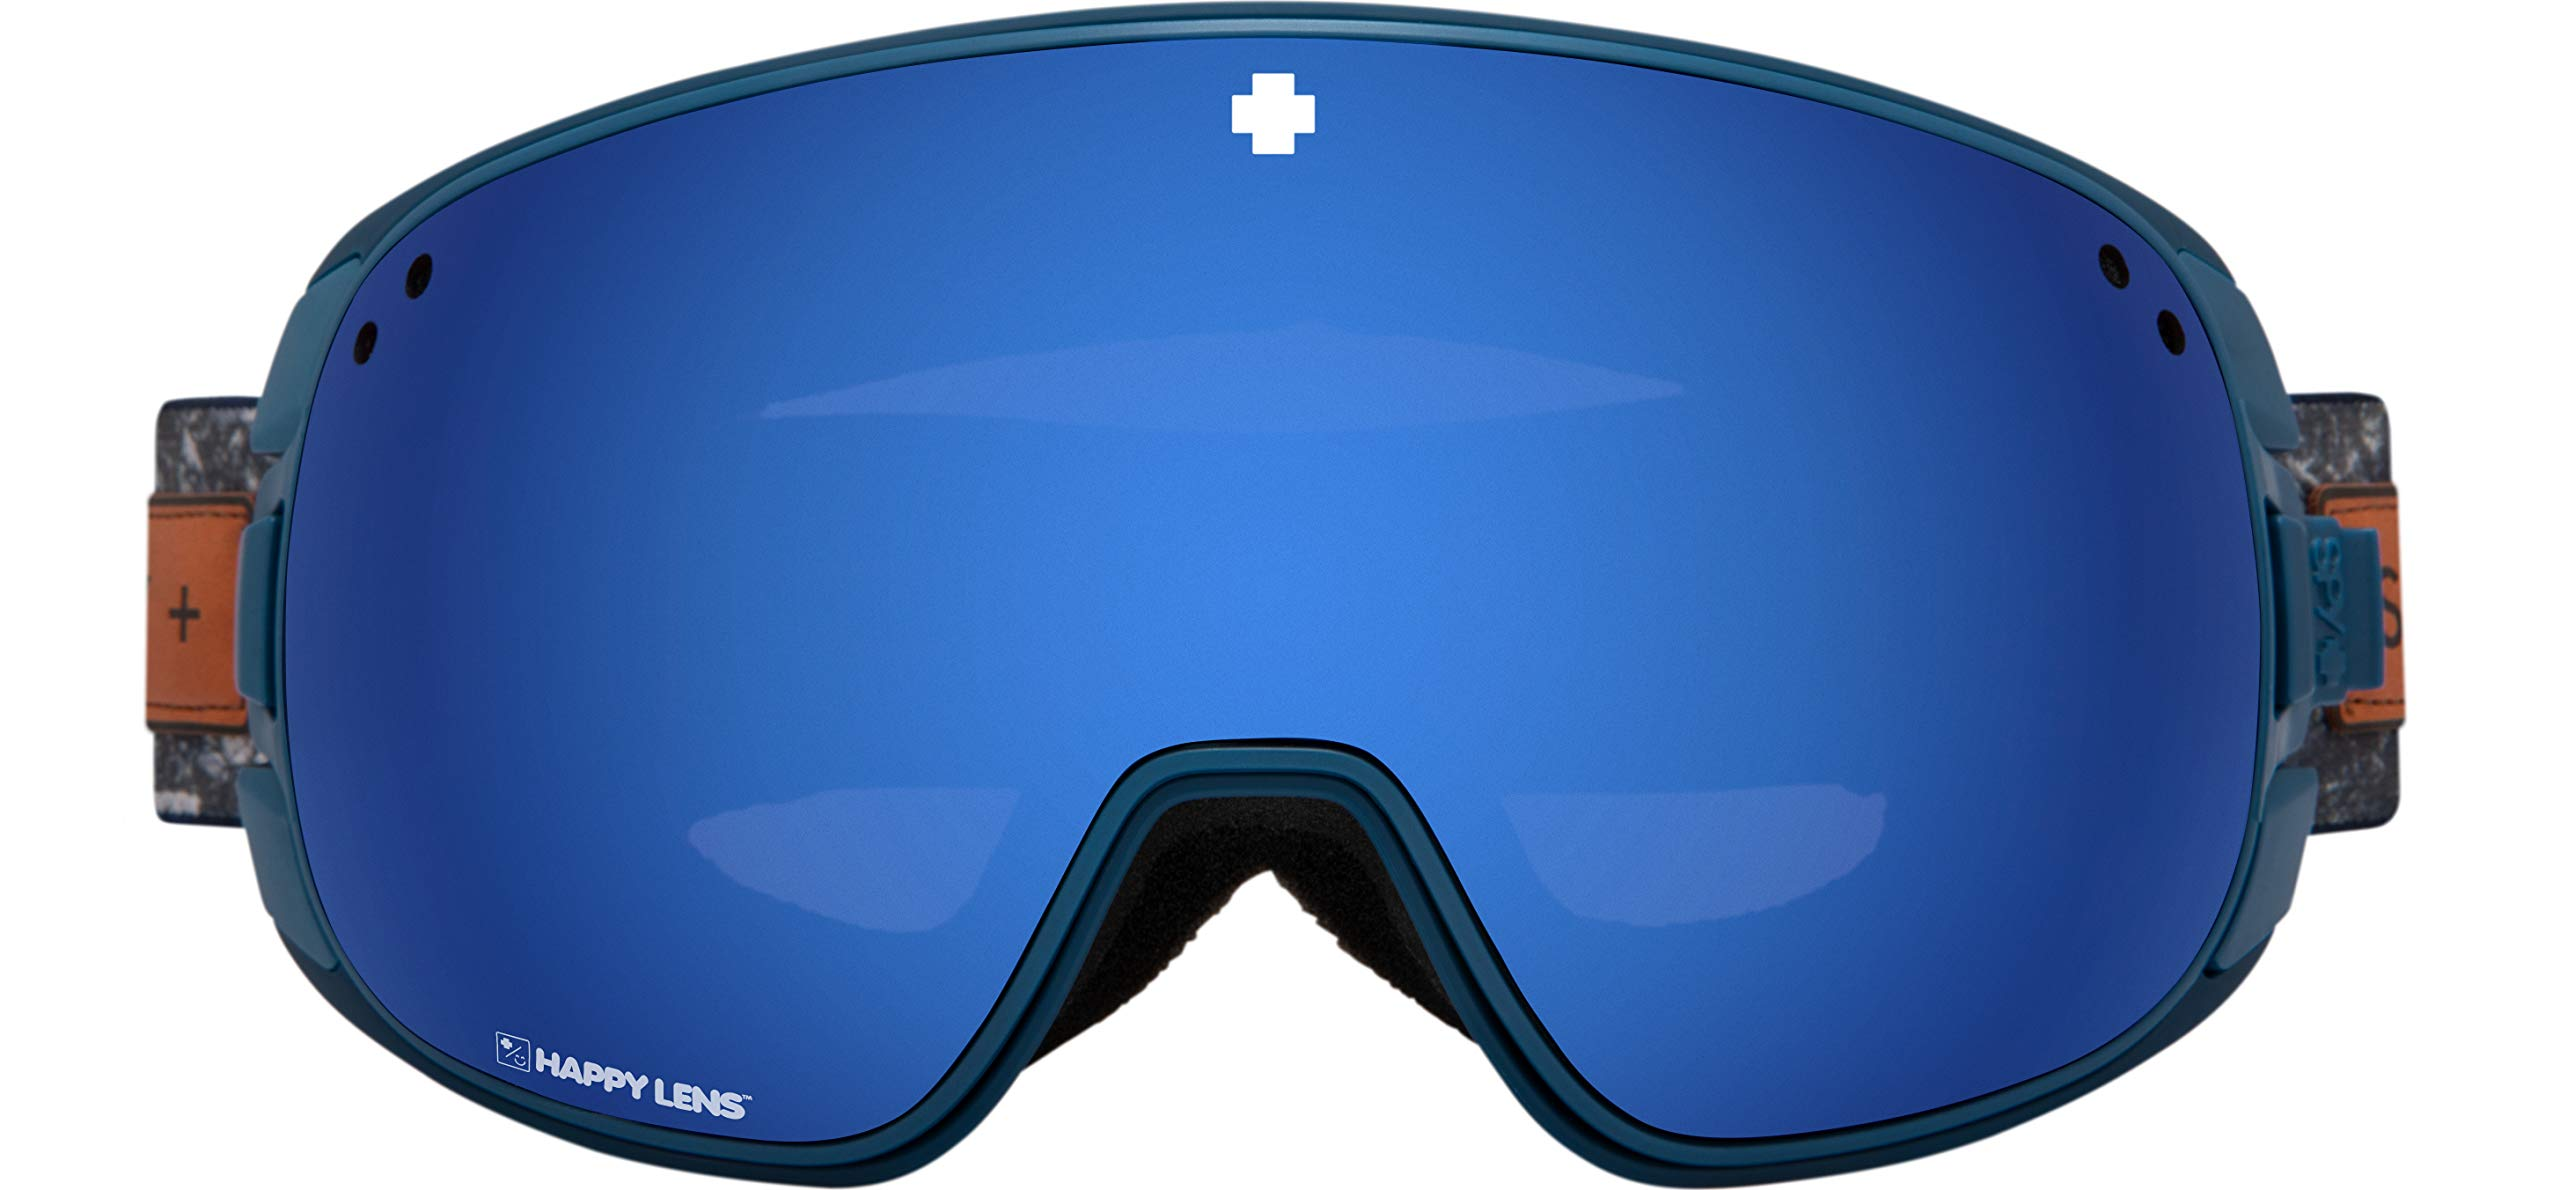 Spy Goggles Medium Sized Navy Happy Spectra